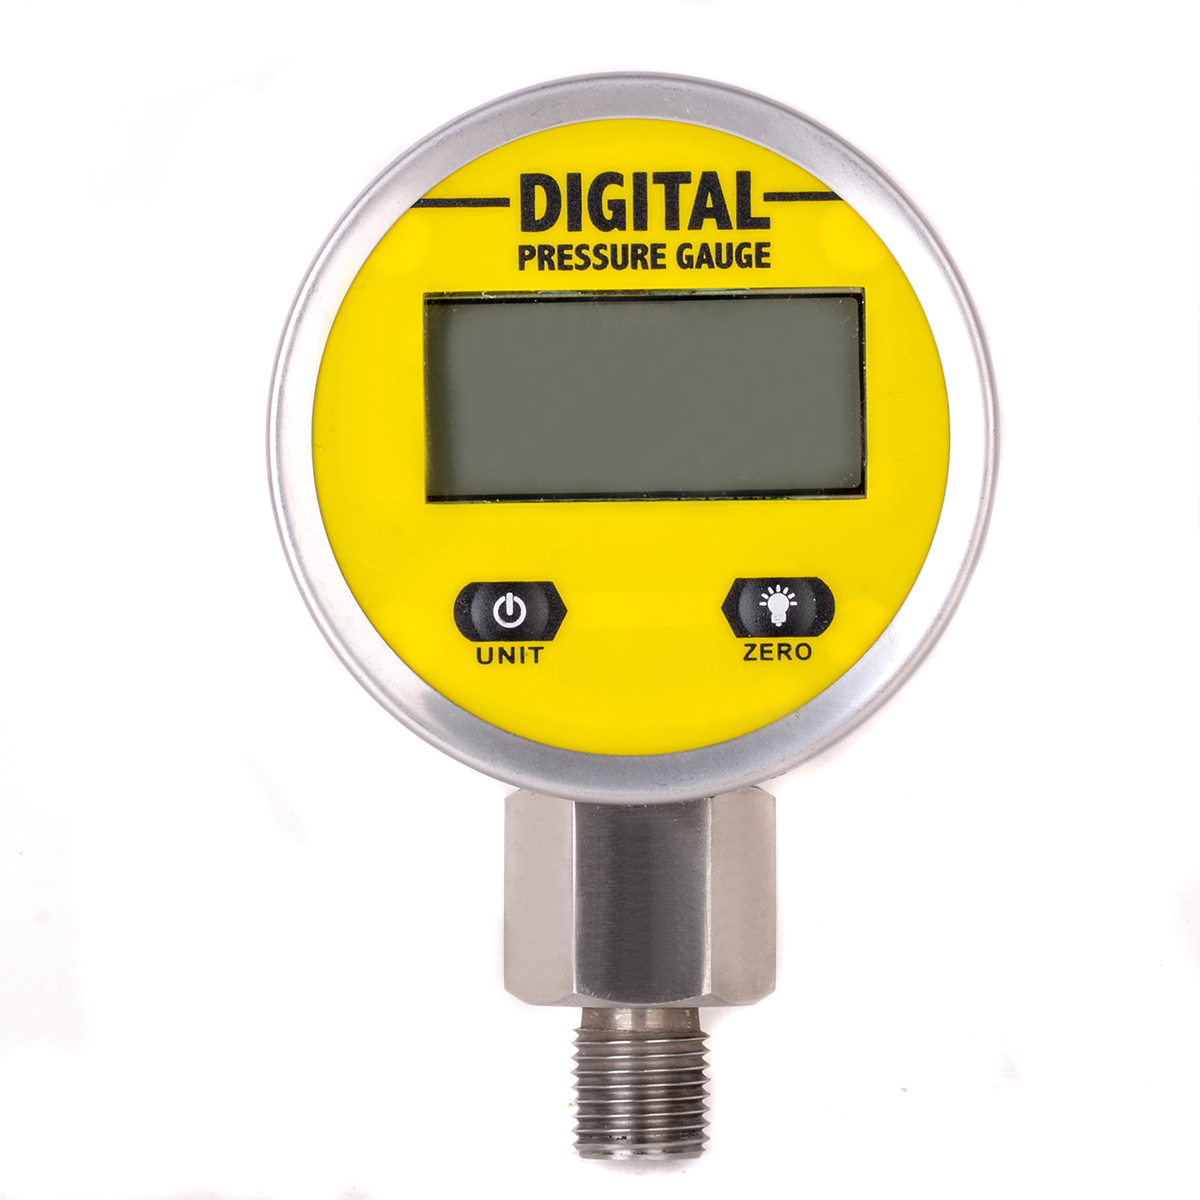 1pc New Reliable Digital Hydraulic Pressure Gauge 0-250BAR / 3600PSI NPT1/4 Base Entry With Backlight Switch LCD Display Mayitr new and original dpa01m p delta pressure switch pressure gauge switch digital display pressure sensor